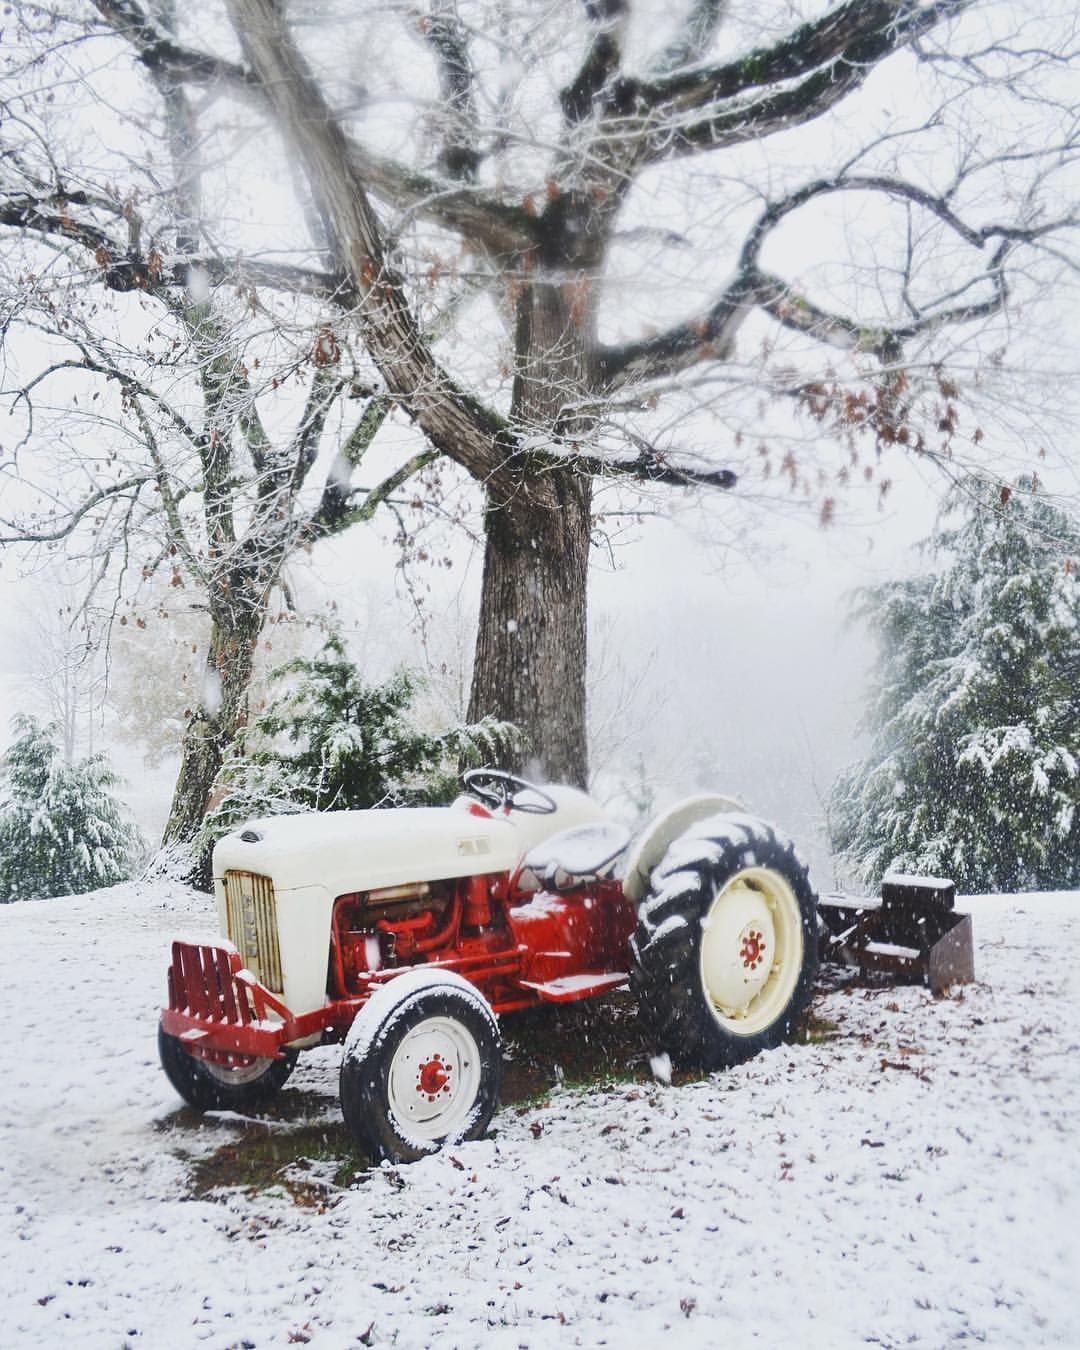 It S Snowing In Alabama Thank You Santa Alabama Snow Tractor In The Snow Vintage Tractor Little White House White Tractor Vintage Tractors